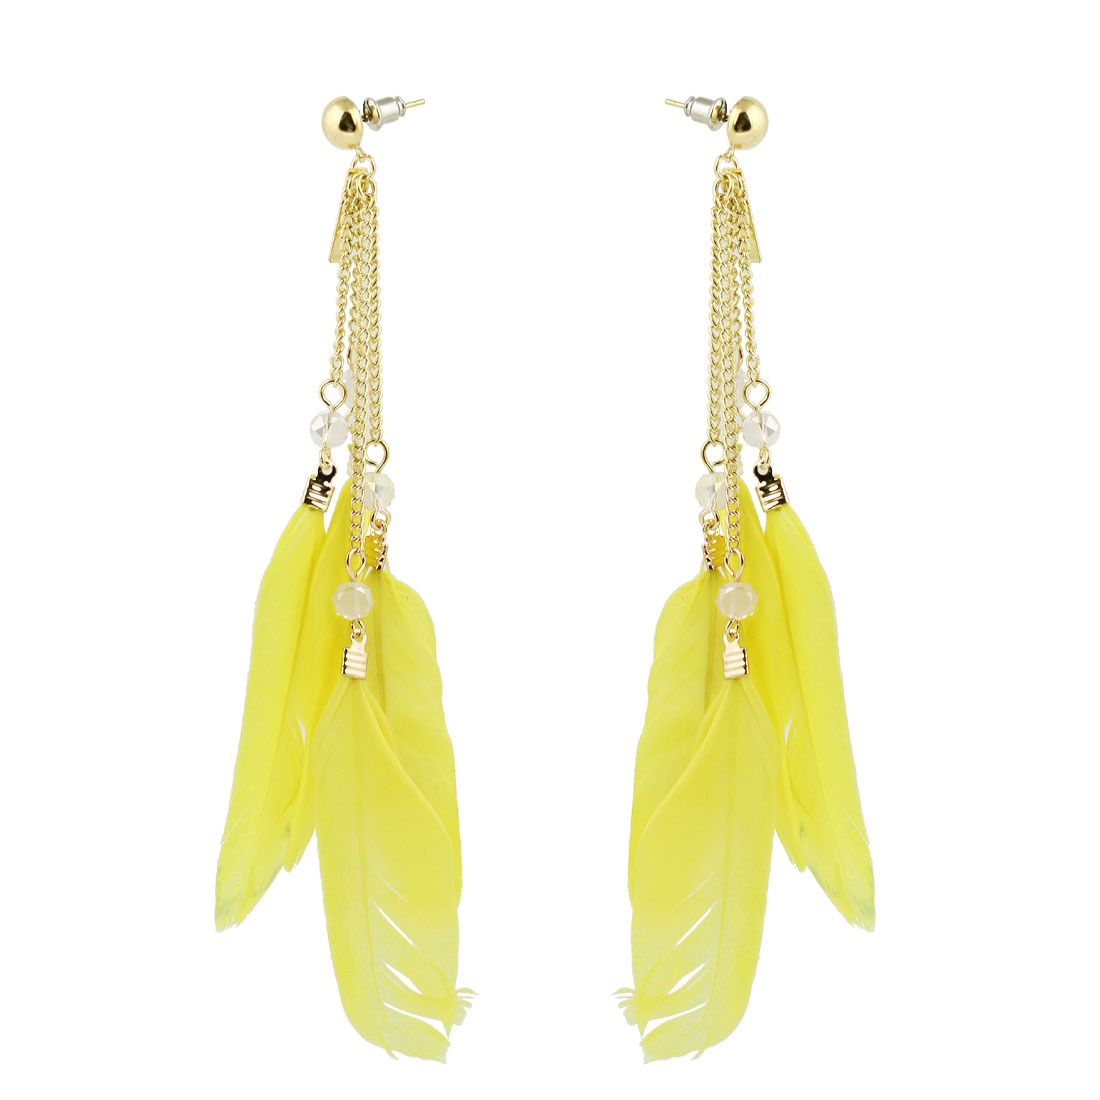 Pair Chain Connect Yellow Feather Pendant Dangling Earring Eardrop for Women